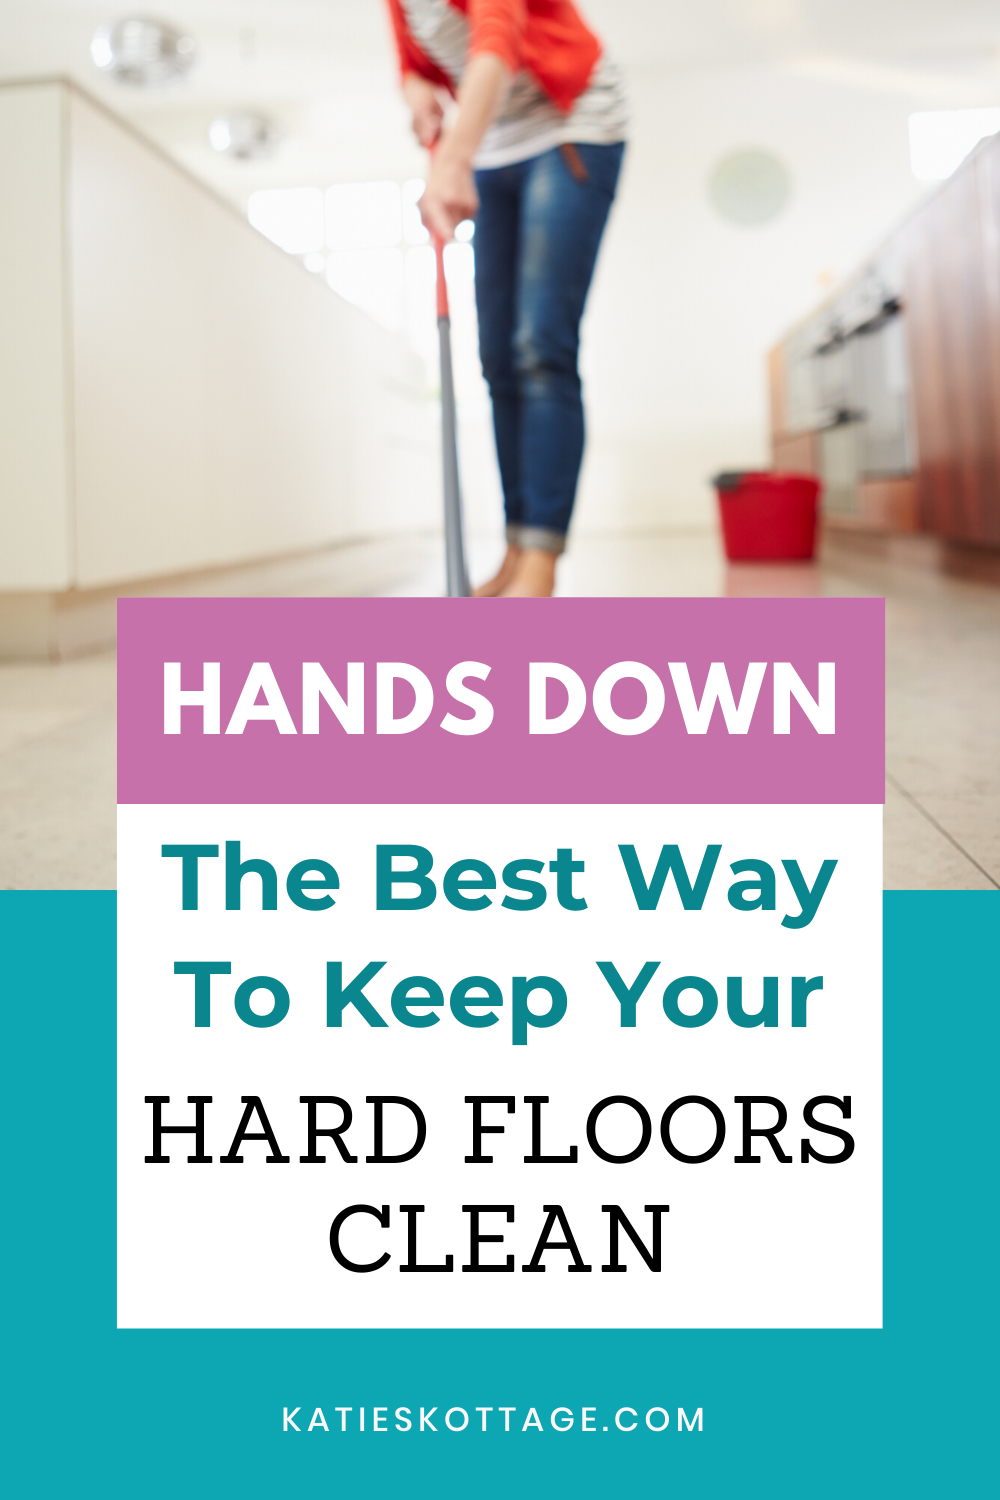 The Best Way To Keep Your Hard Floors Clean Katieskottage In 2020 Floor Cleaner Hard Floor Floor Cleaning Hacks